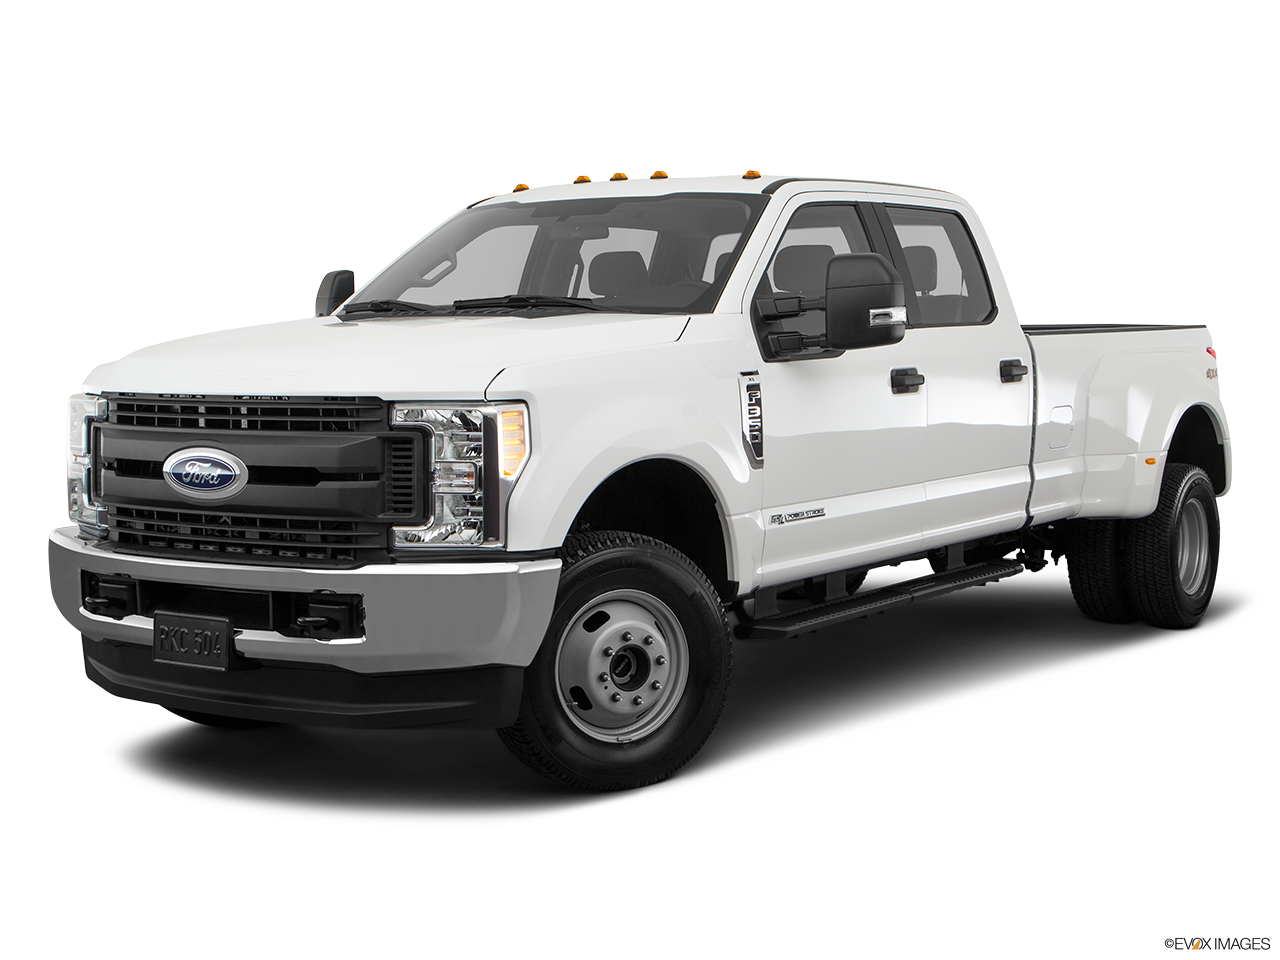 Test Drive A 2017 Ford Super Duty at Mossy Ford in San Diego